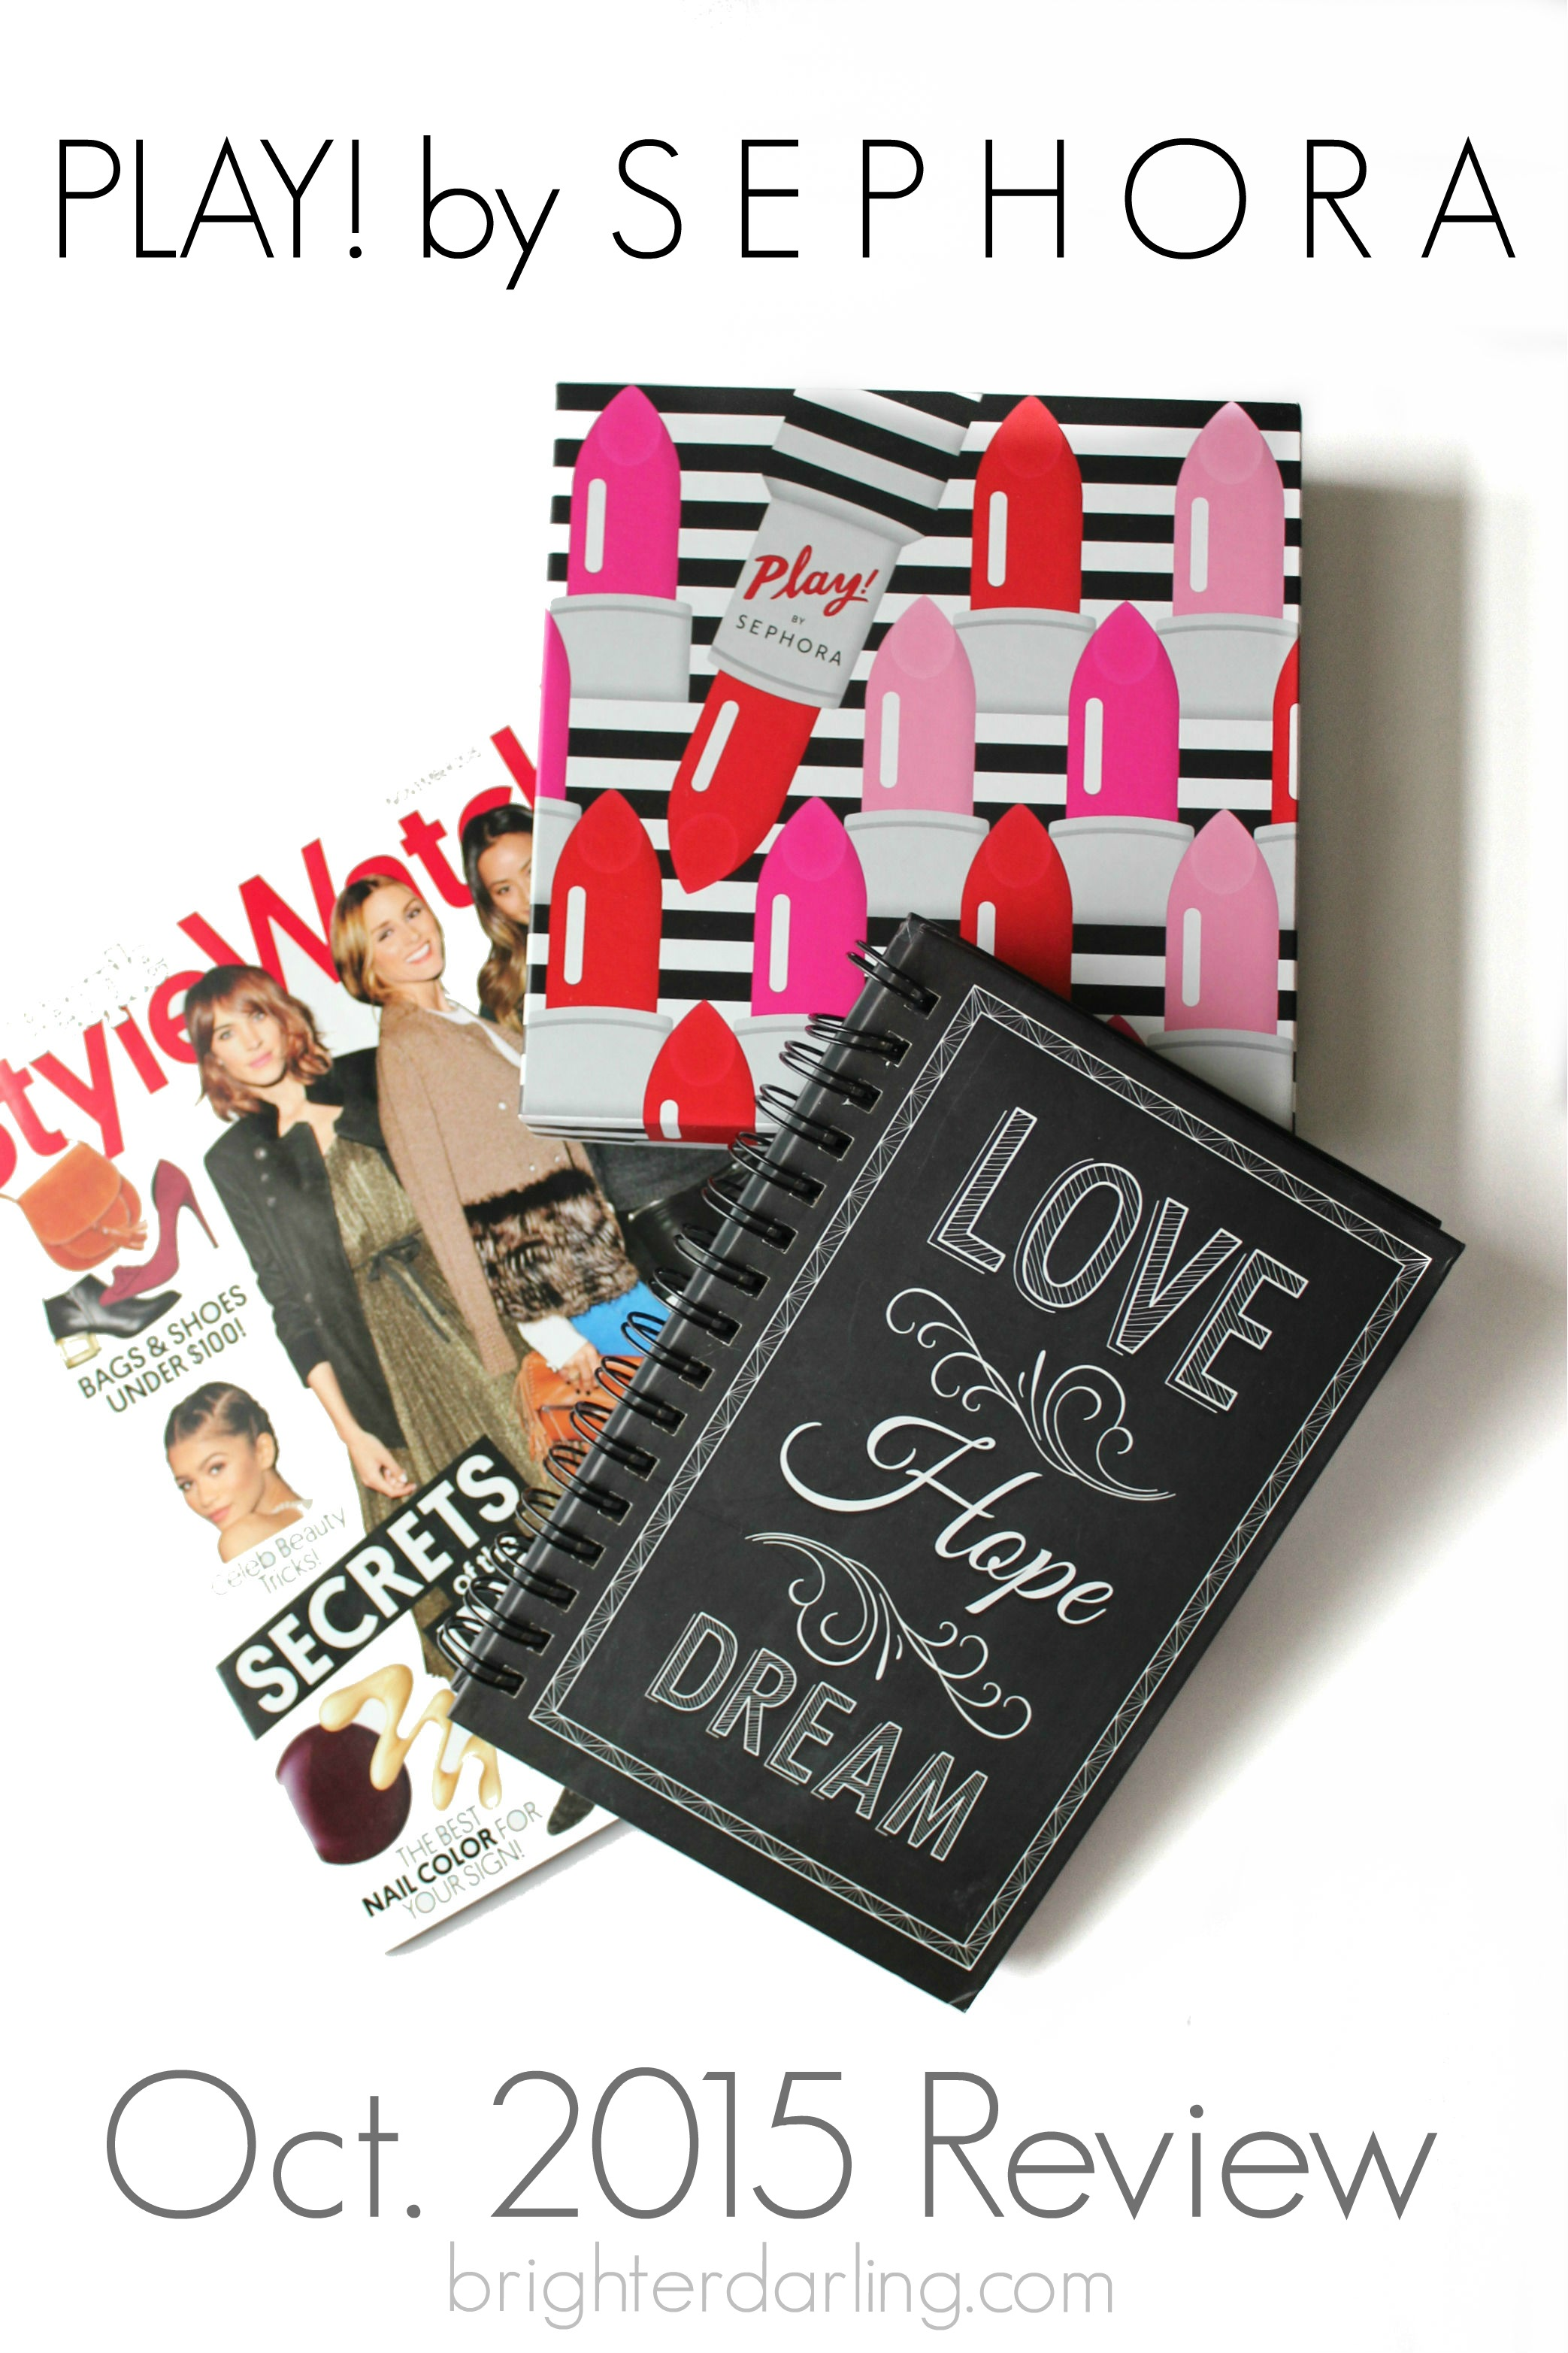 #SephoraPlay Subscription Box Review for Oct. 2015